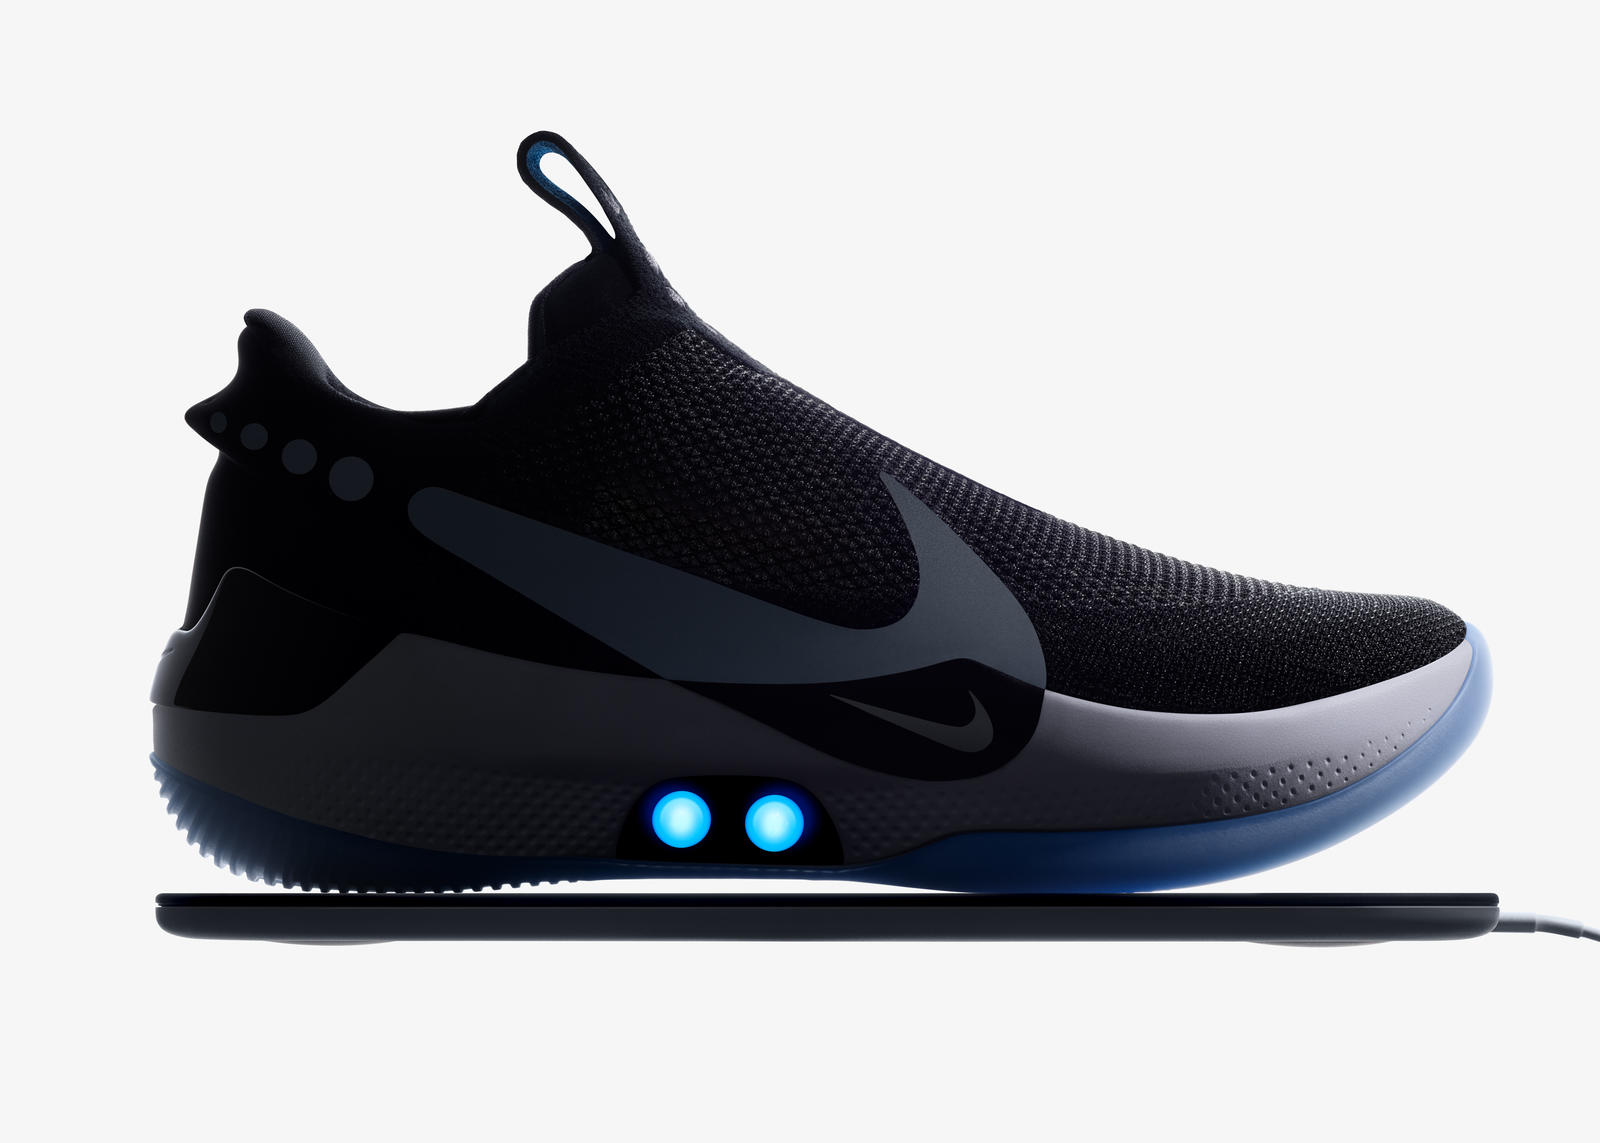 8bb5bec34 Introducing the Nike Adapt BB - Nike News